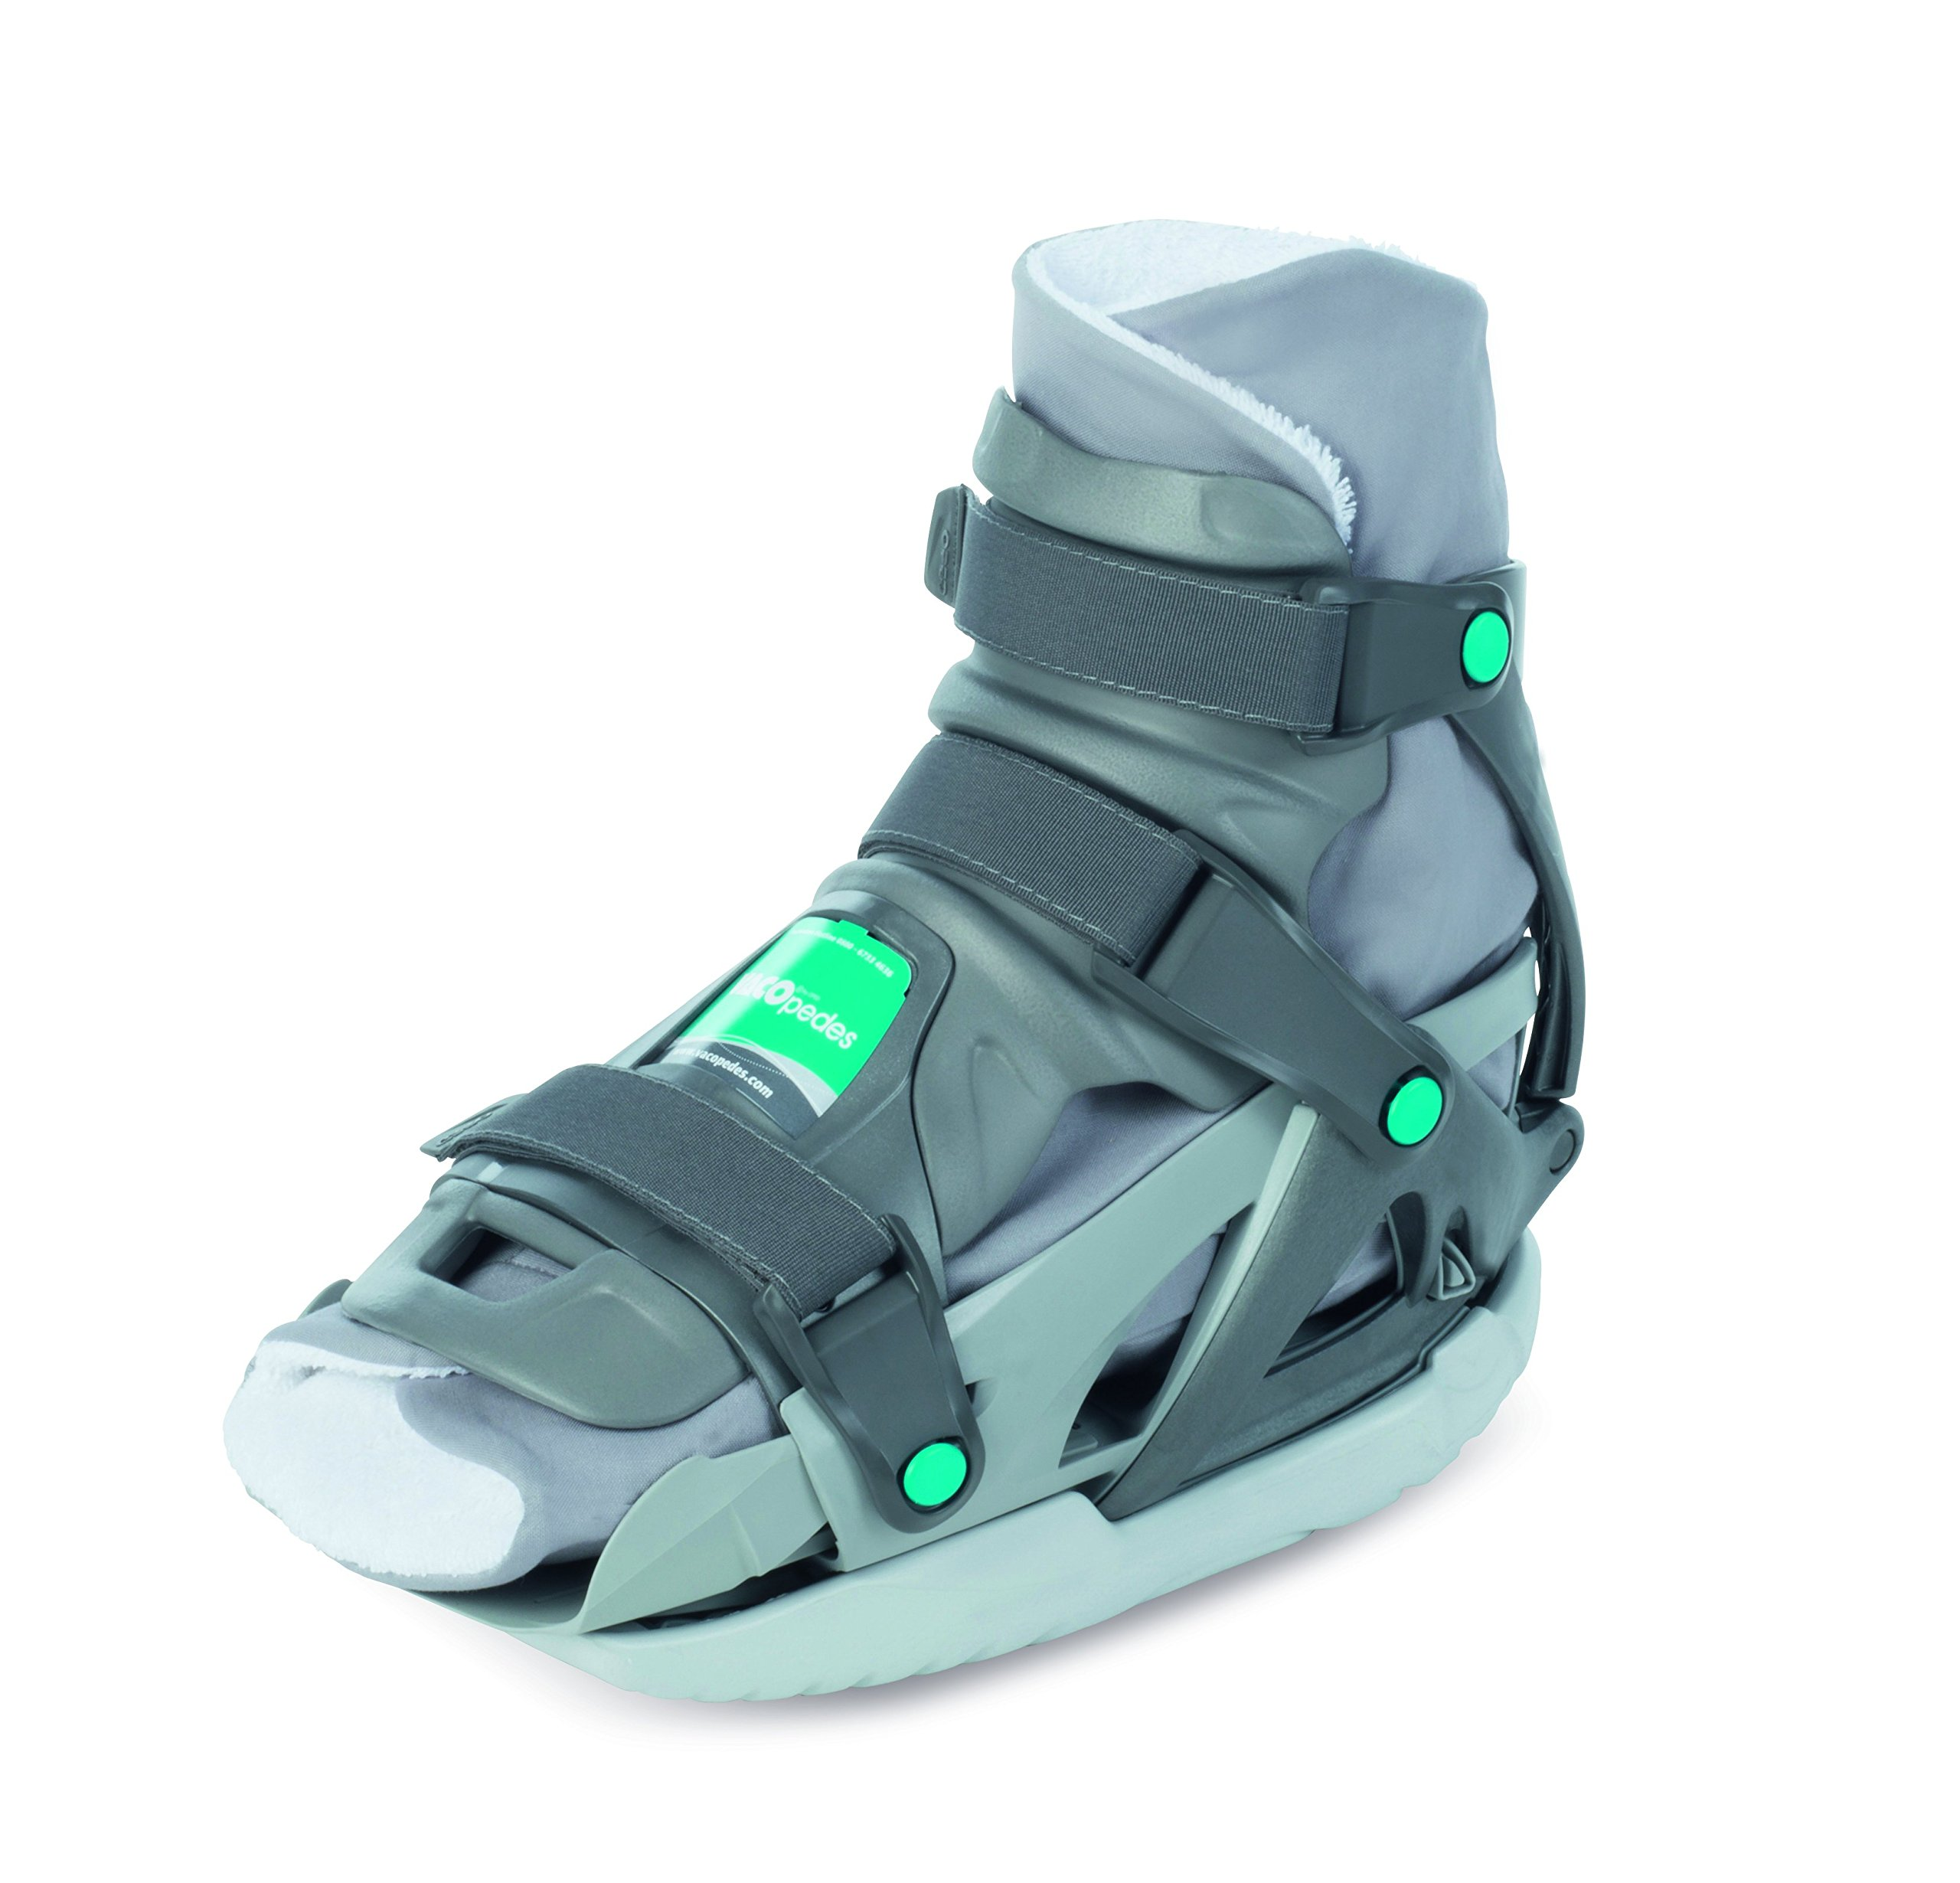 VACOpedes Low-Rise Fracture Orthosis Walking Boot - Men's & Women's